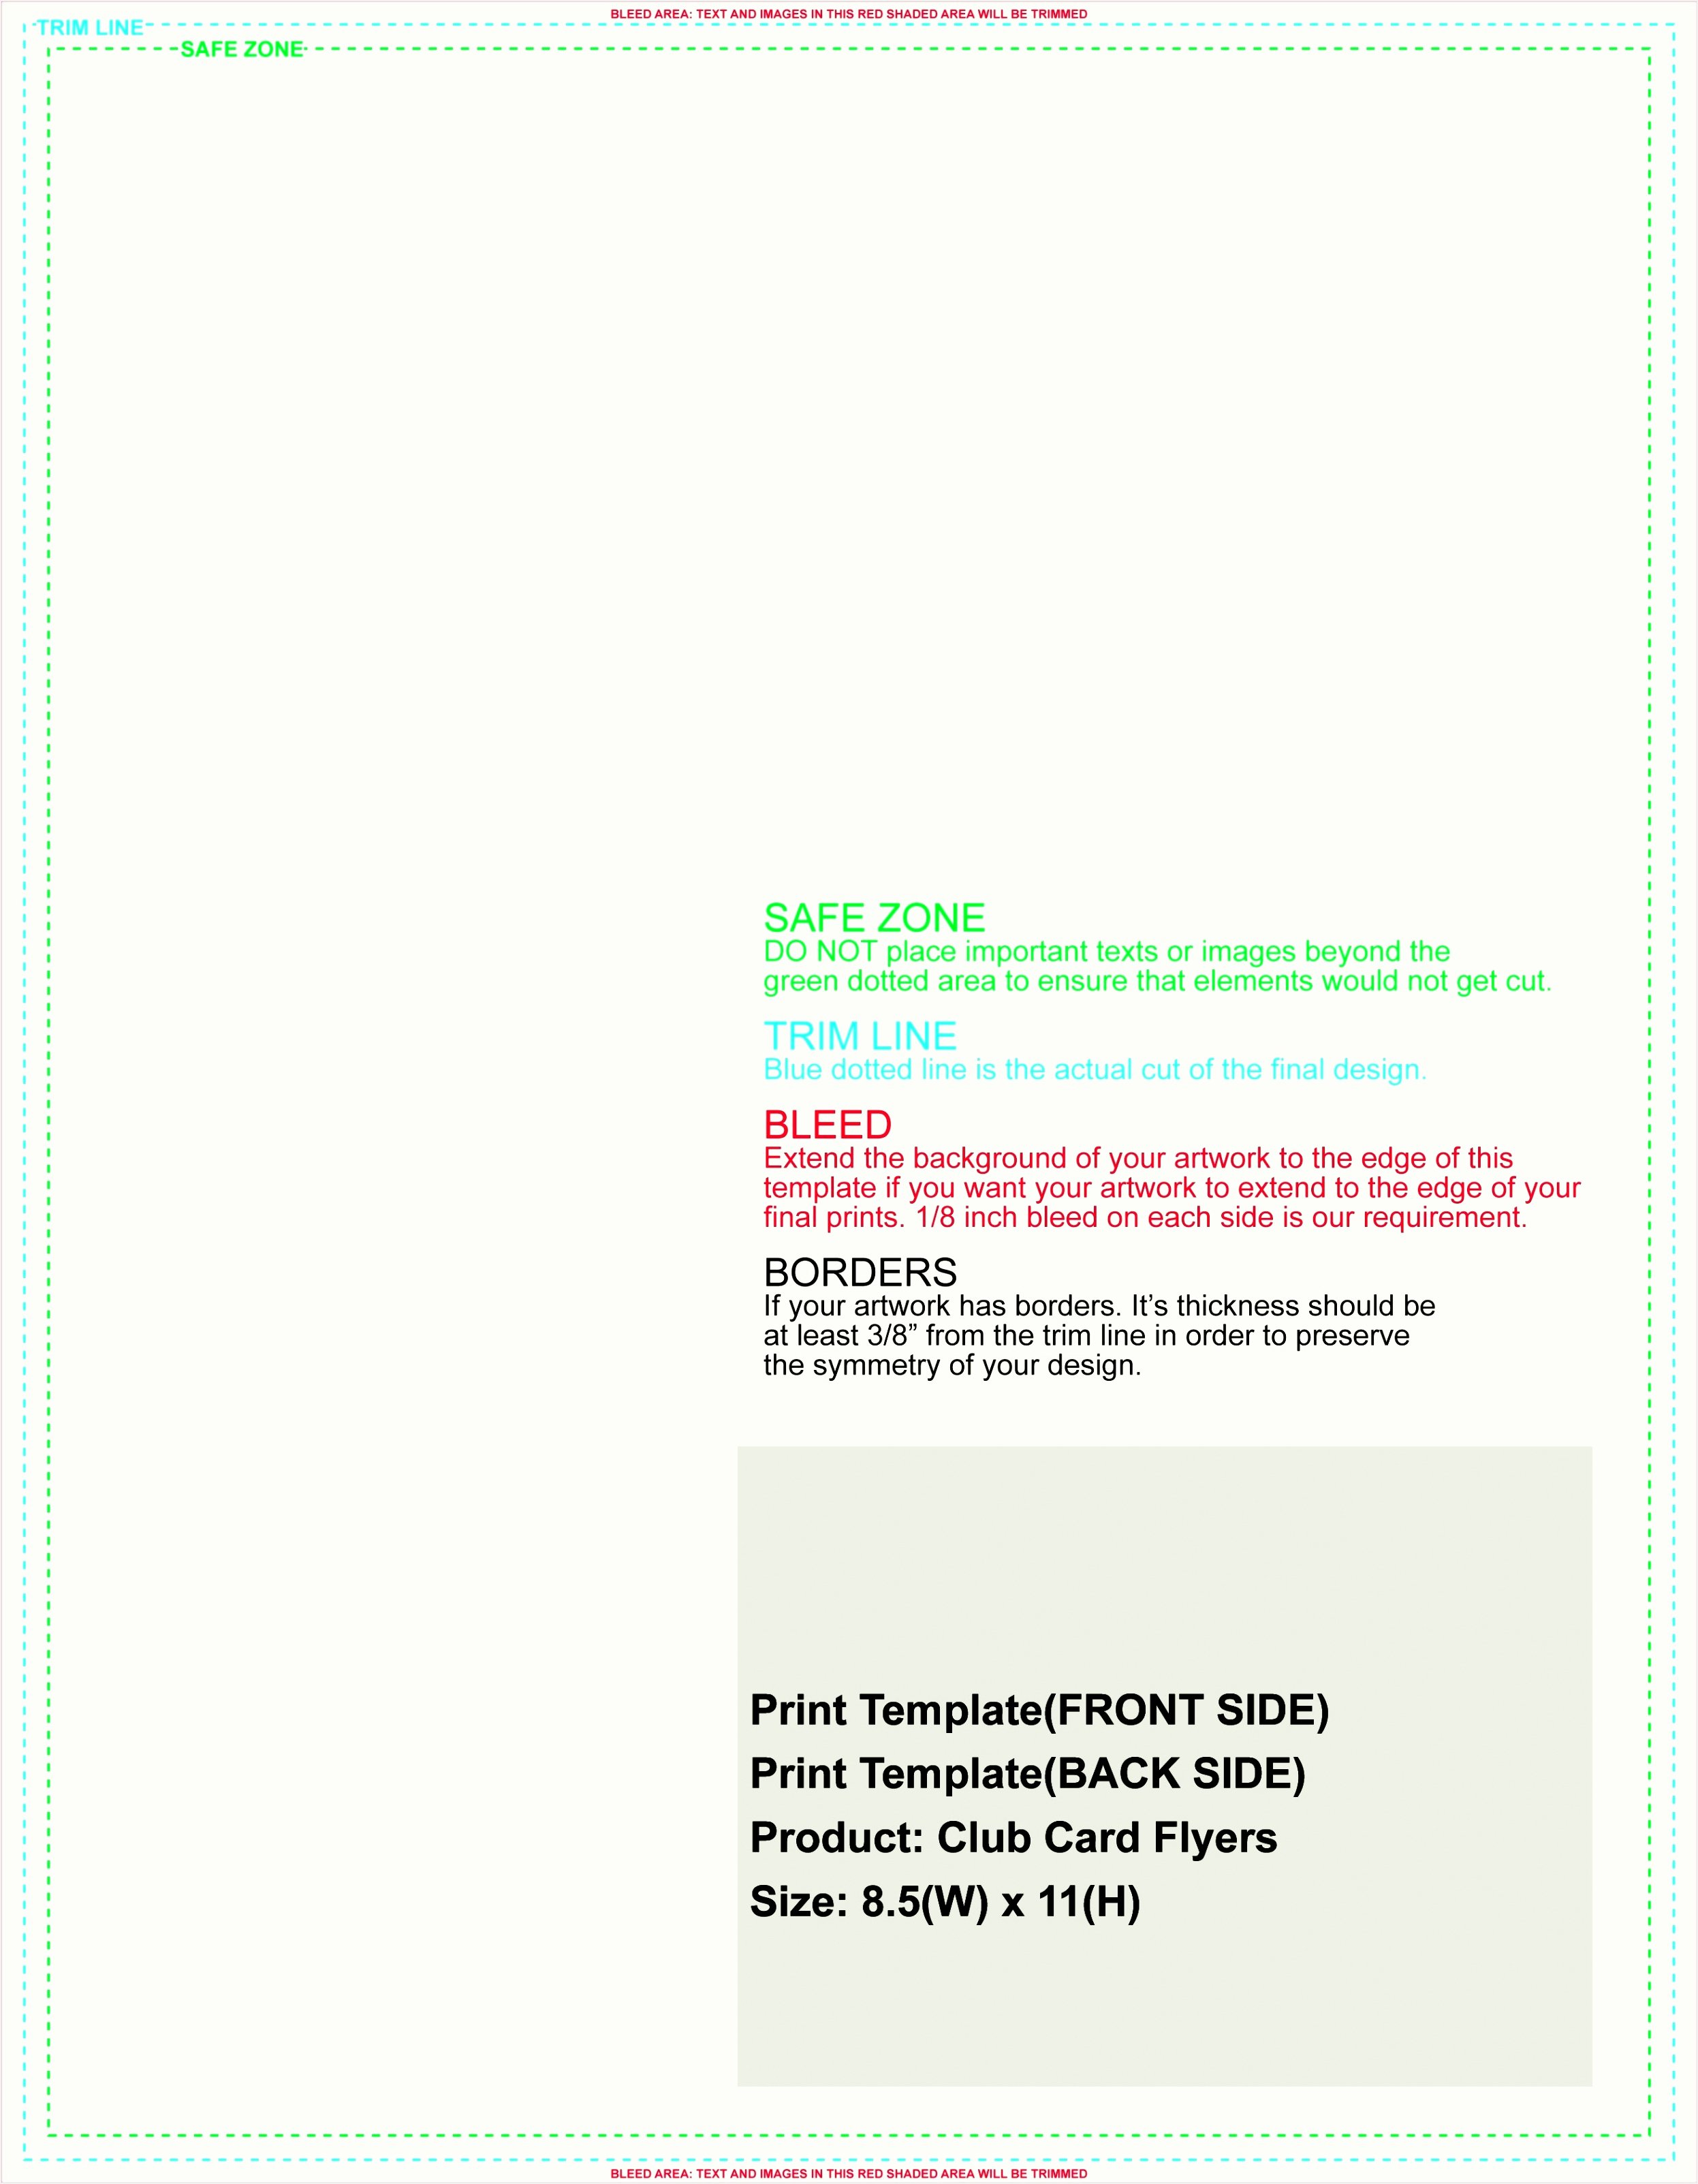 Indesign Business Card Template 8 Up Bleed